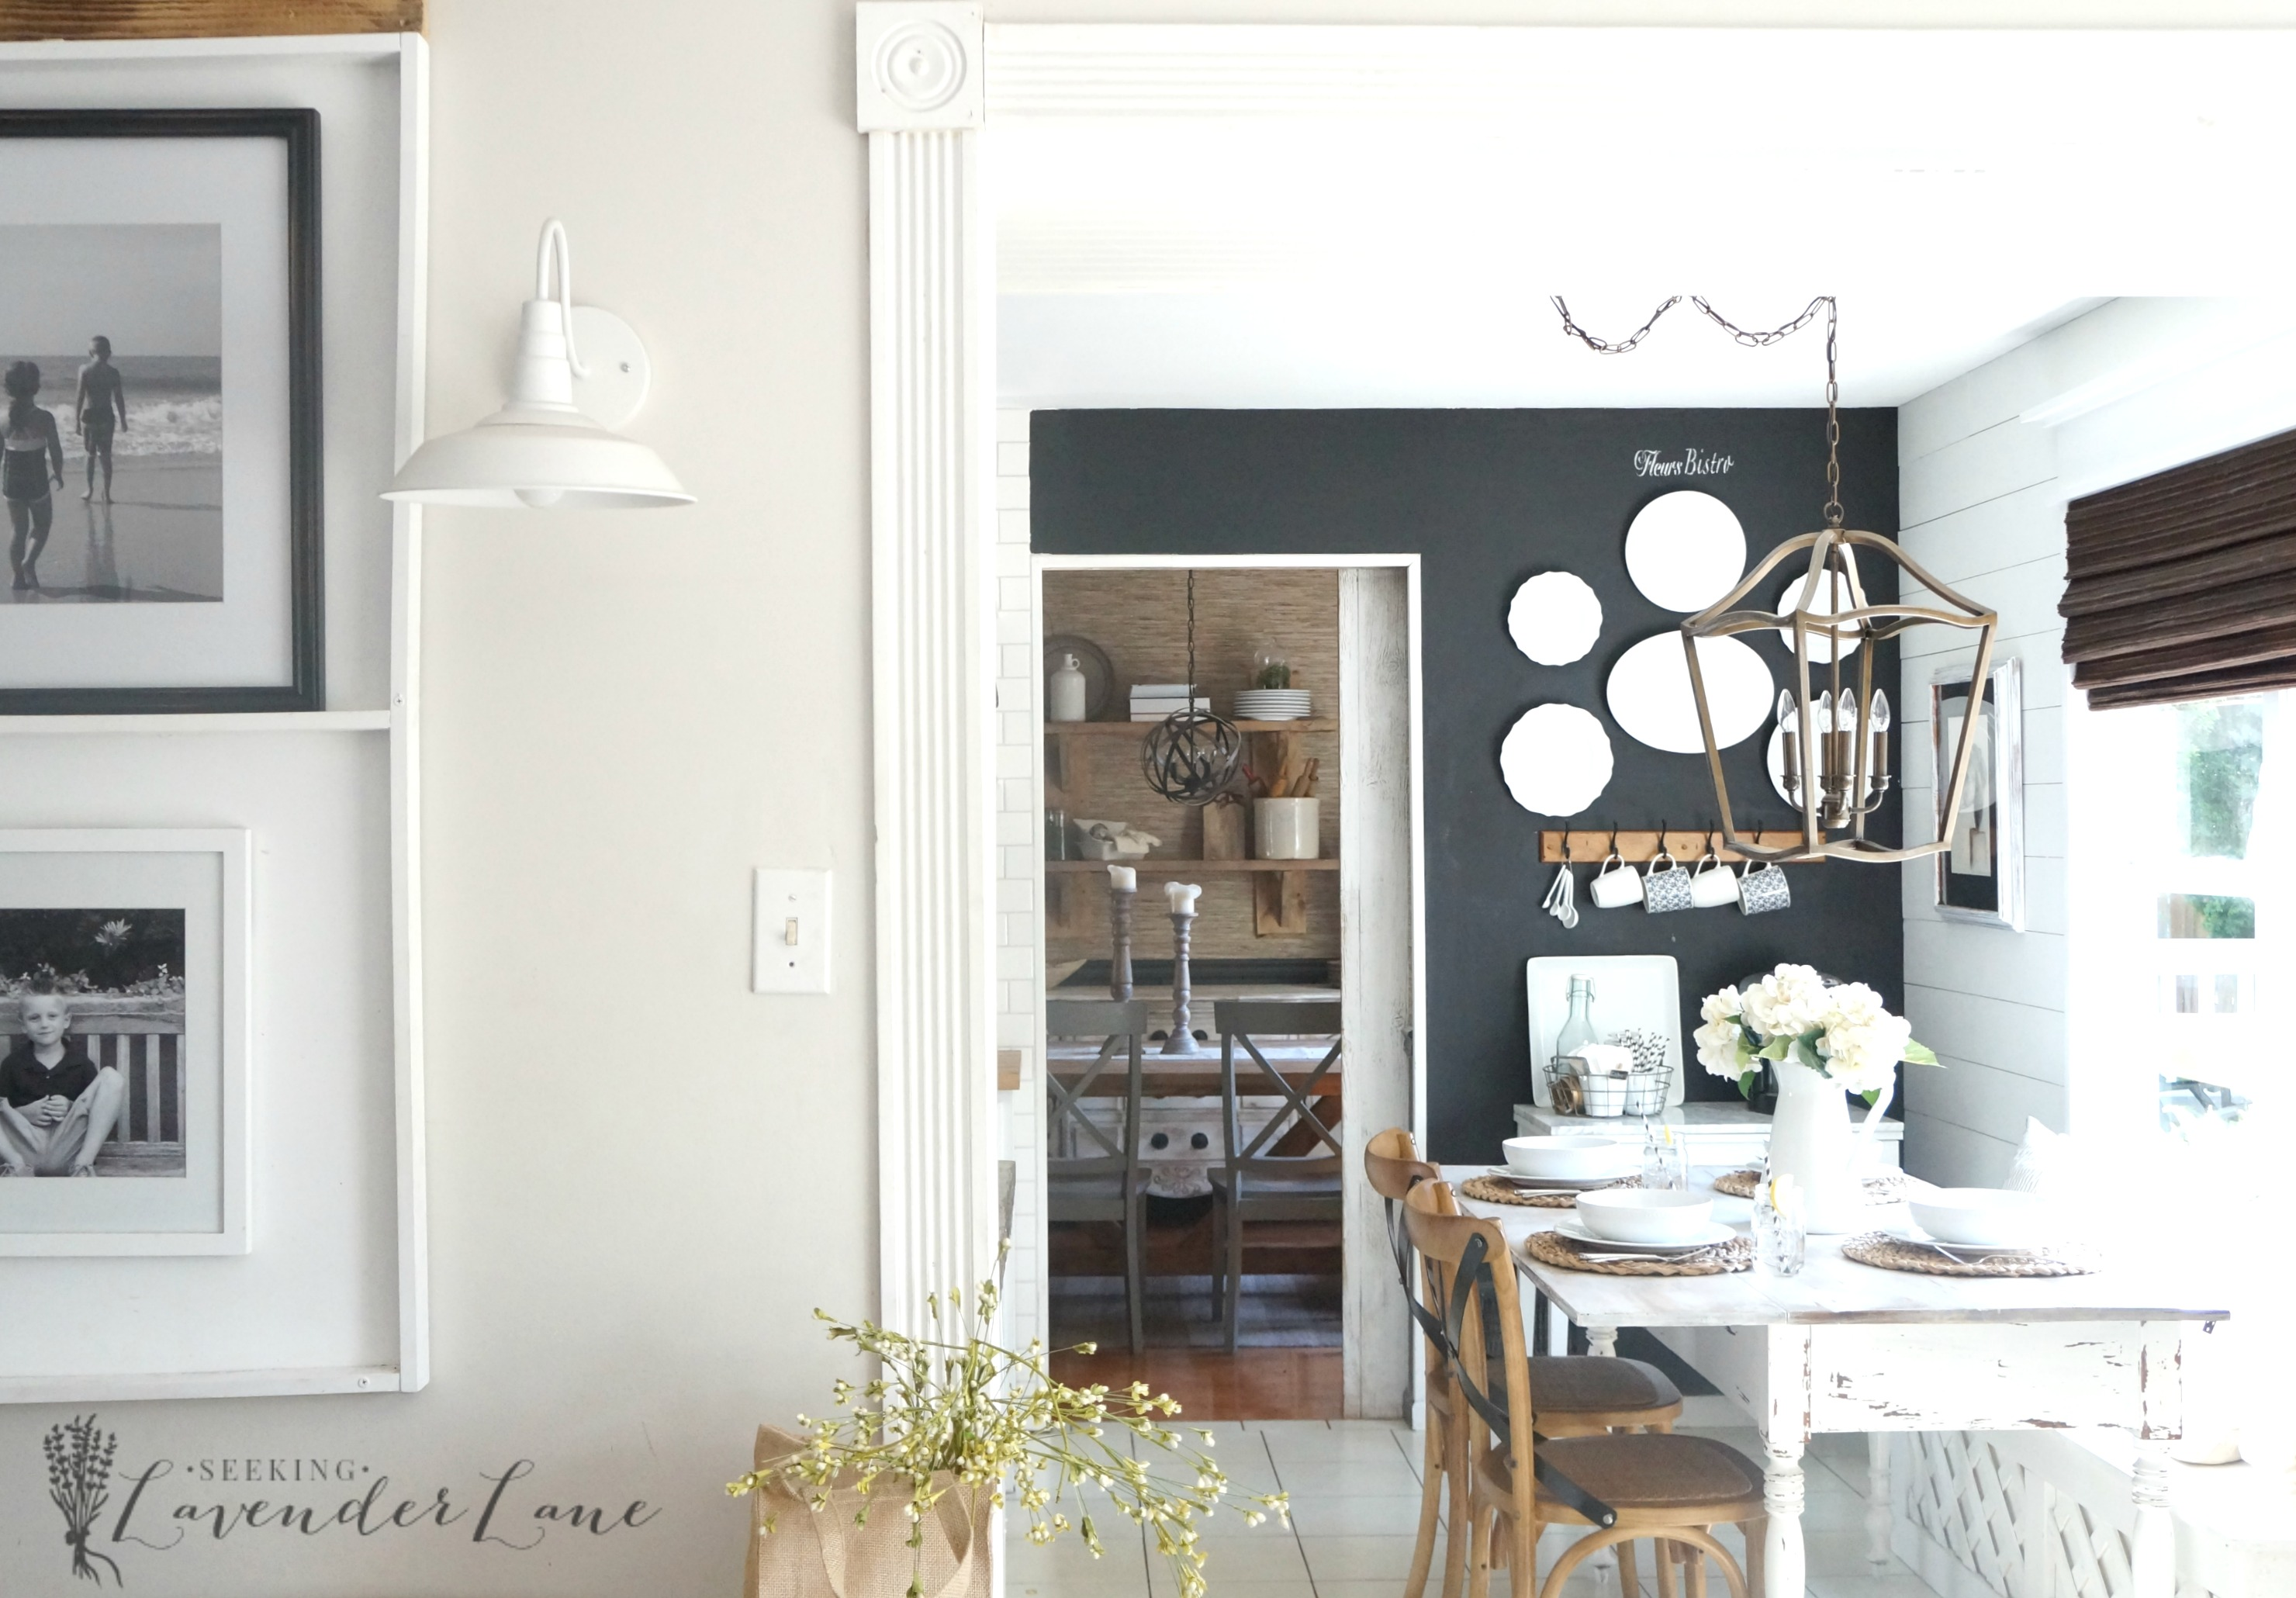 Farmhouse Kitchen Reveal Seeking Lavendar Lane